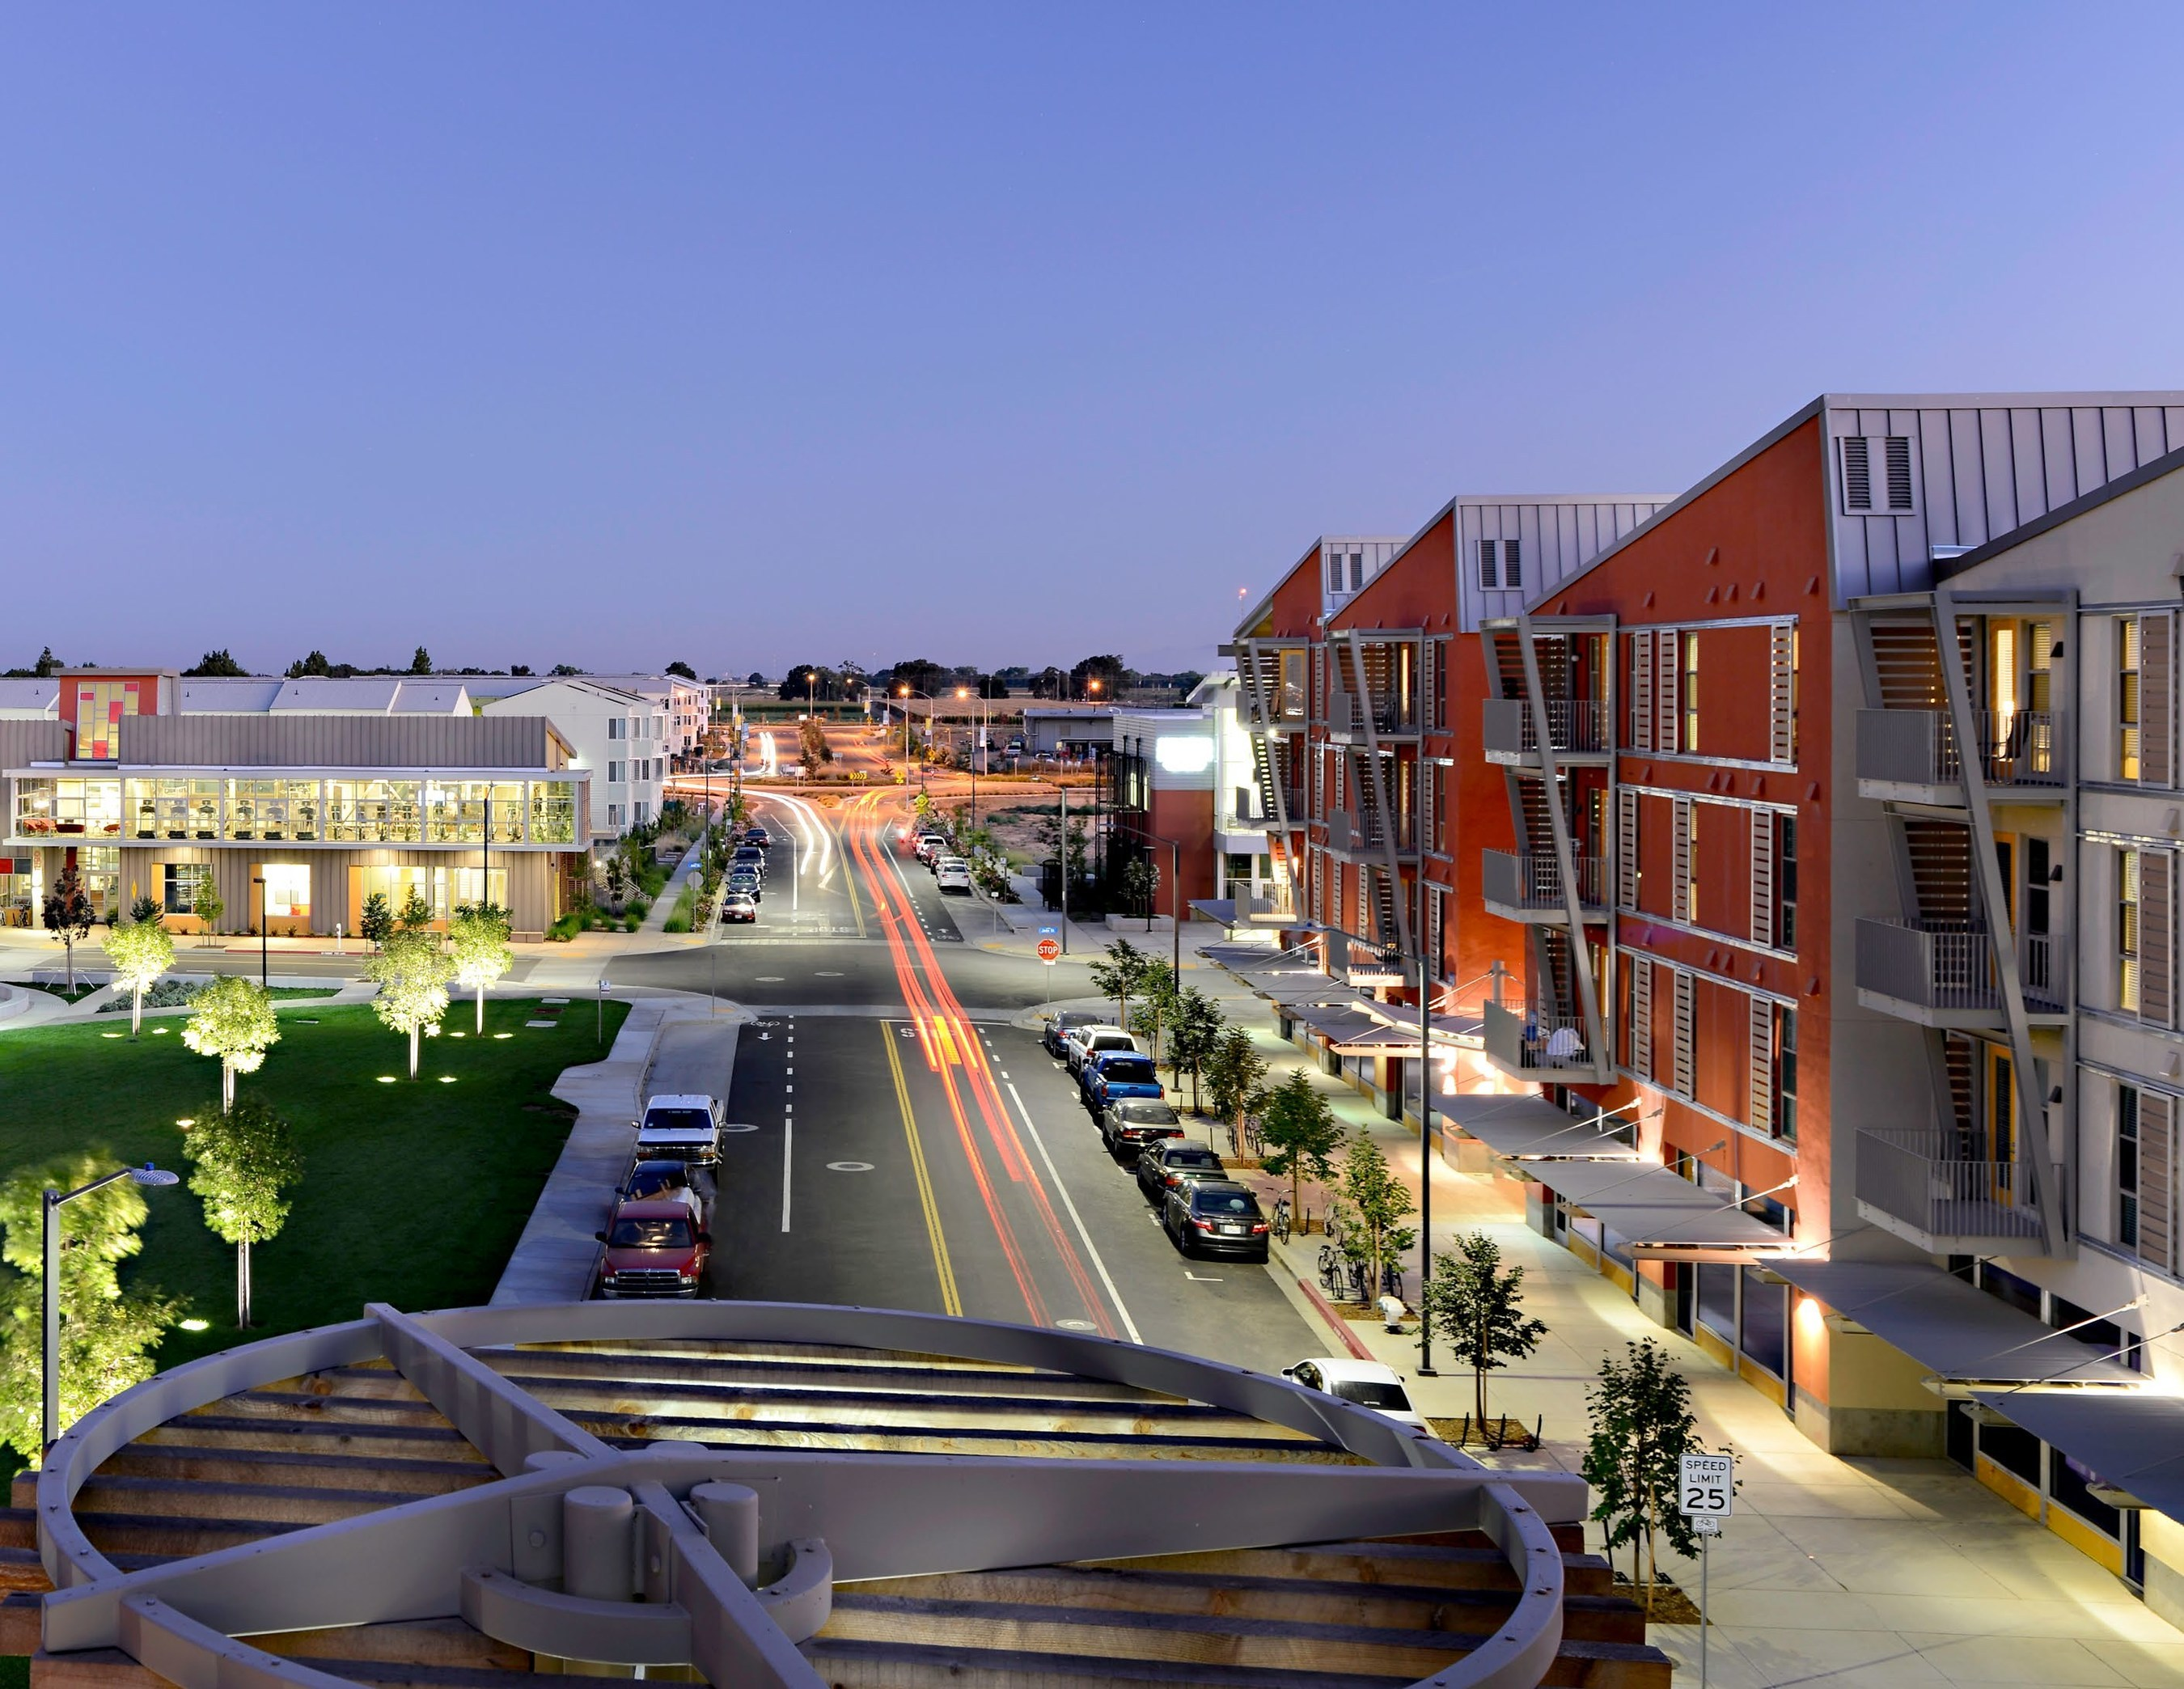 Ocean West Led Group Closes on 2,300 Bed Student Housing Portfolio Located at the University of California, Davis